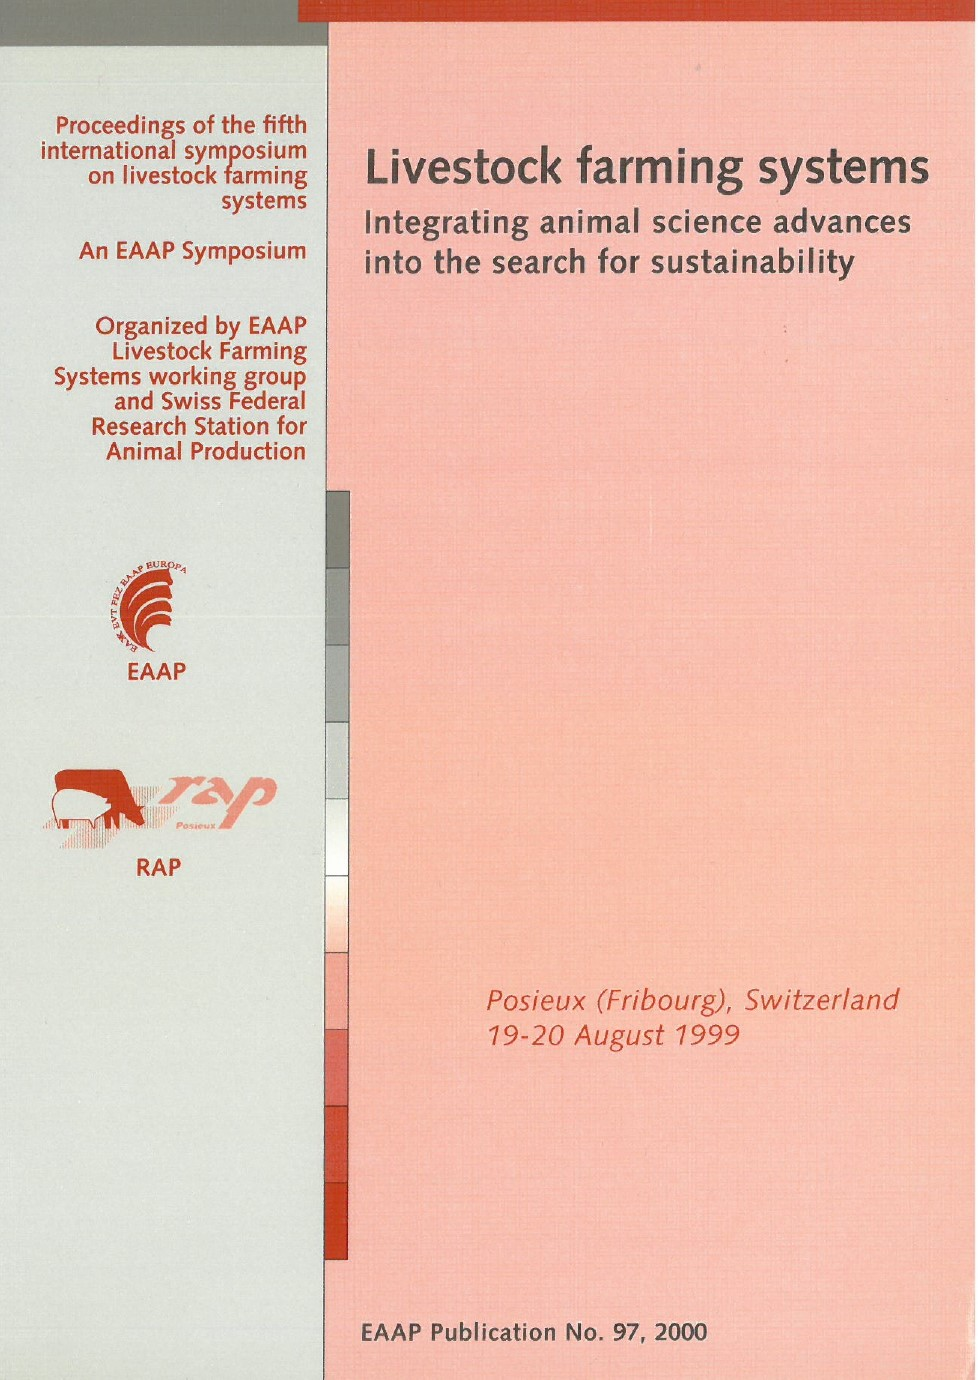 Livestock farming systems – Integrating animal science advances into the reseach for sustainability